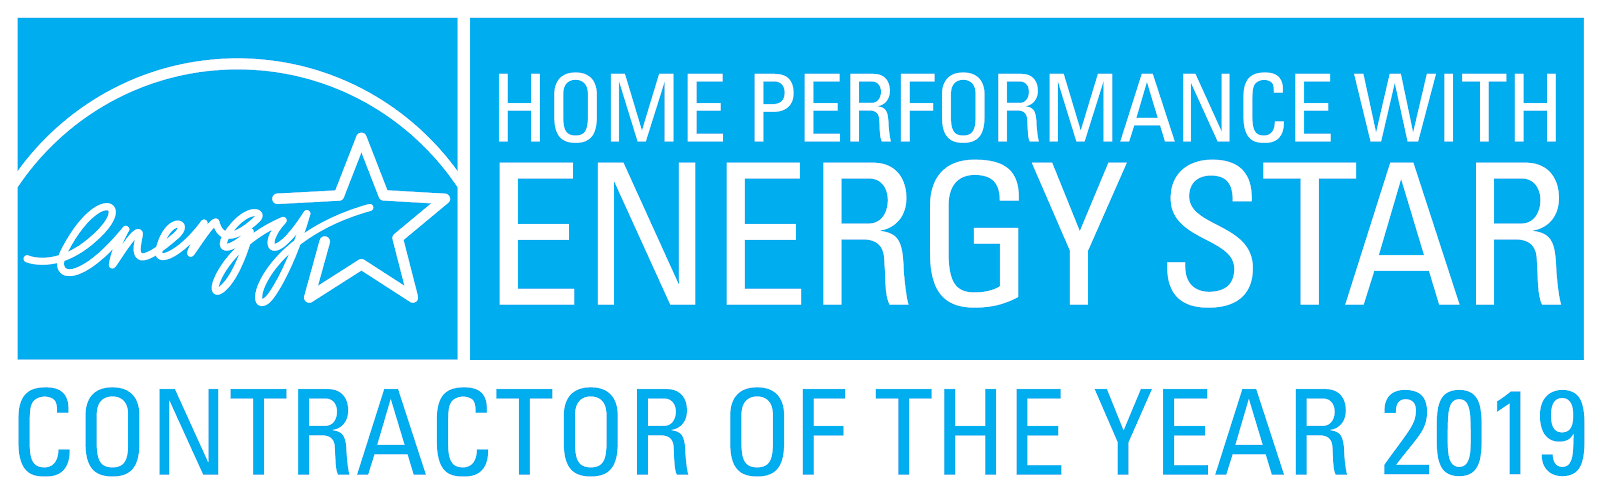 Energy Star Contractor of the Year 2019